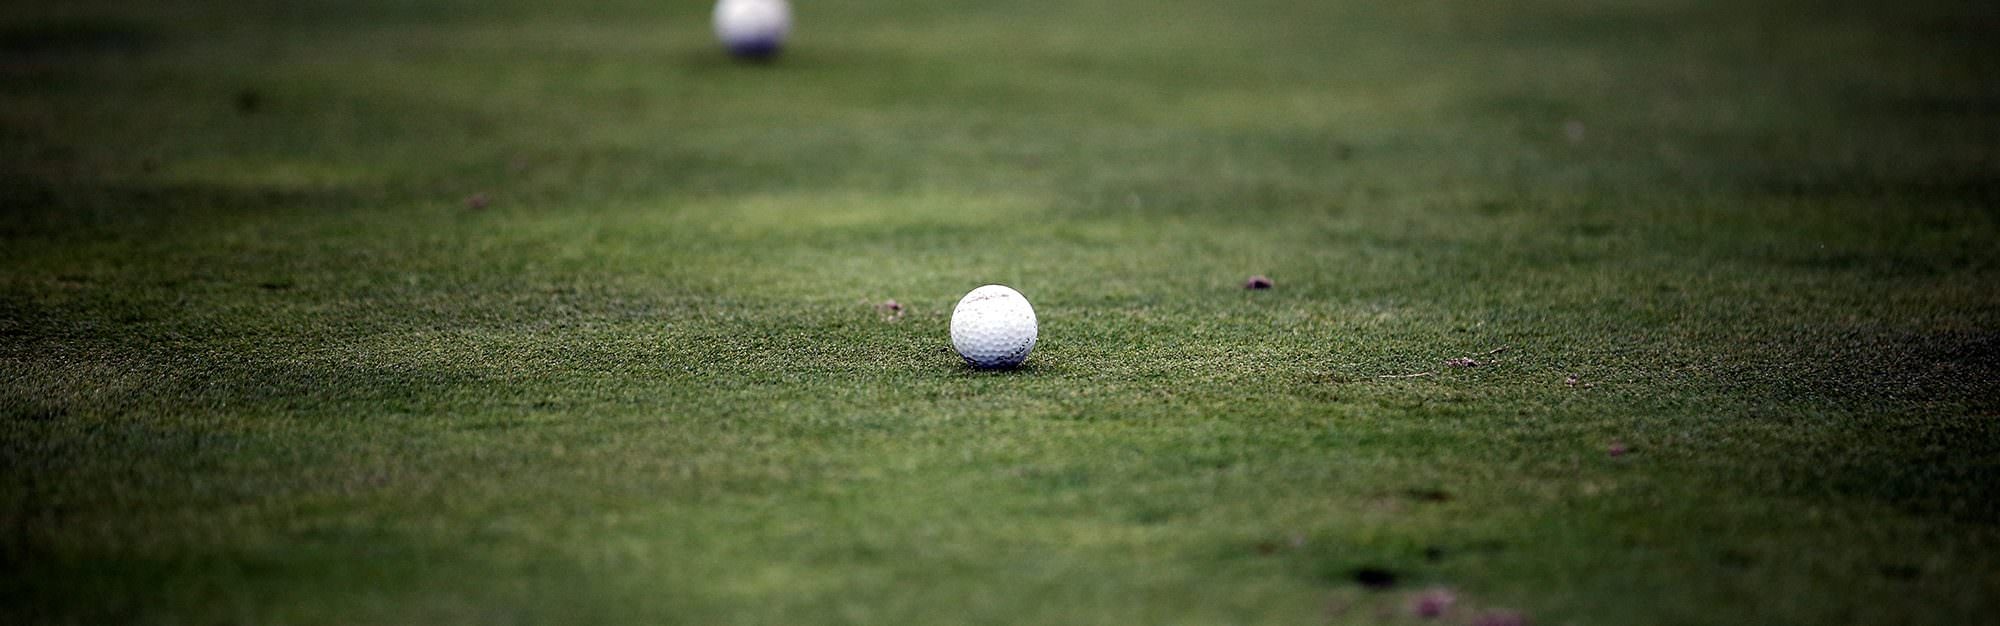 Fewer holes, no flagsticks, and mark your own card: Official reports explain golf after lockdown